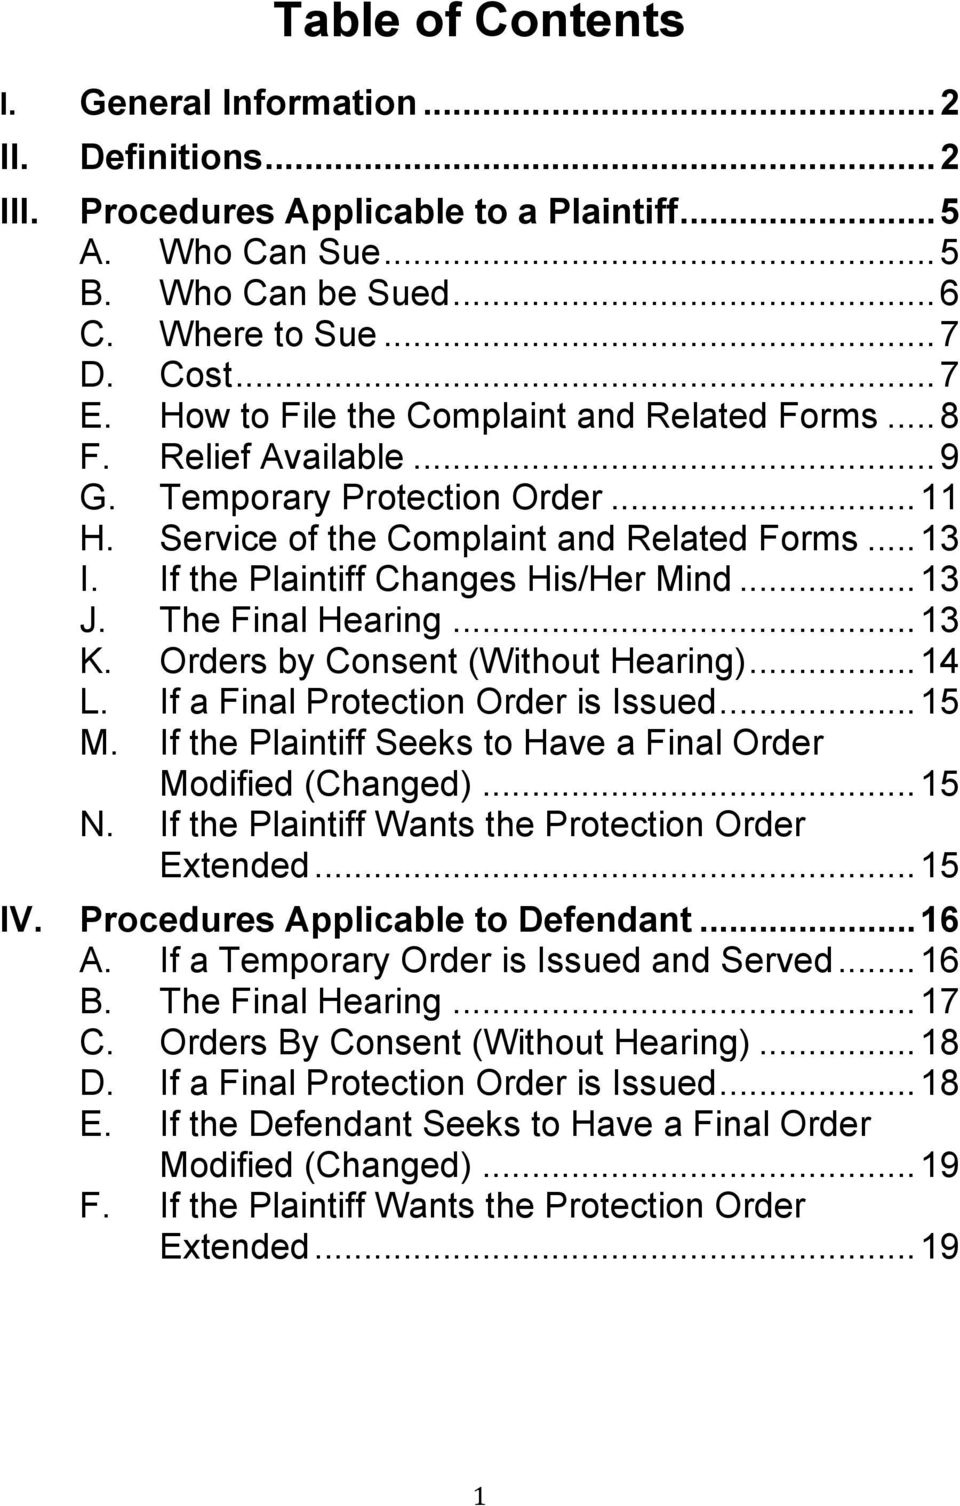 If the Plaintiff Changes His/Her Mind... 13 J. The Final Hearing... 13 K. Orders by Consent (Without Hearing)... 14 L. If a Final Protection Order is Issued... 15 M.